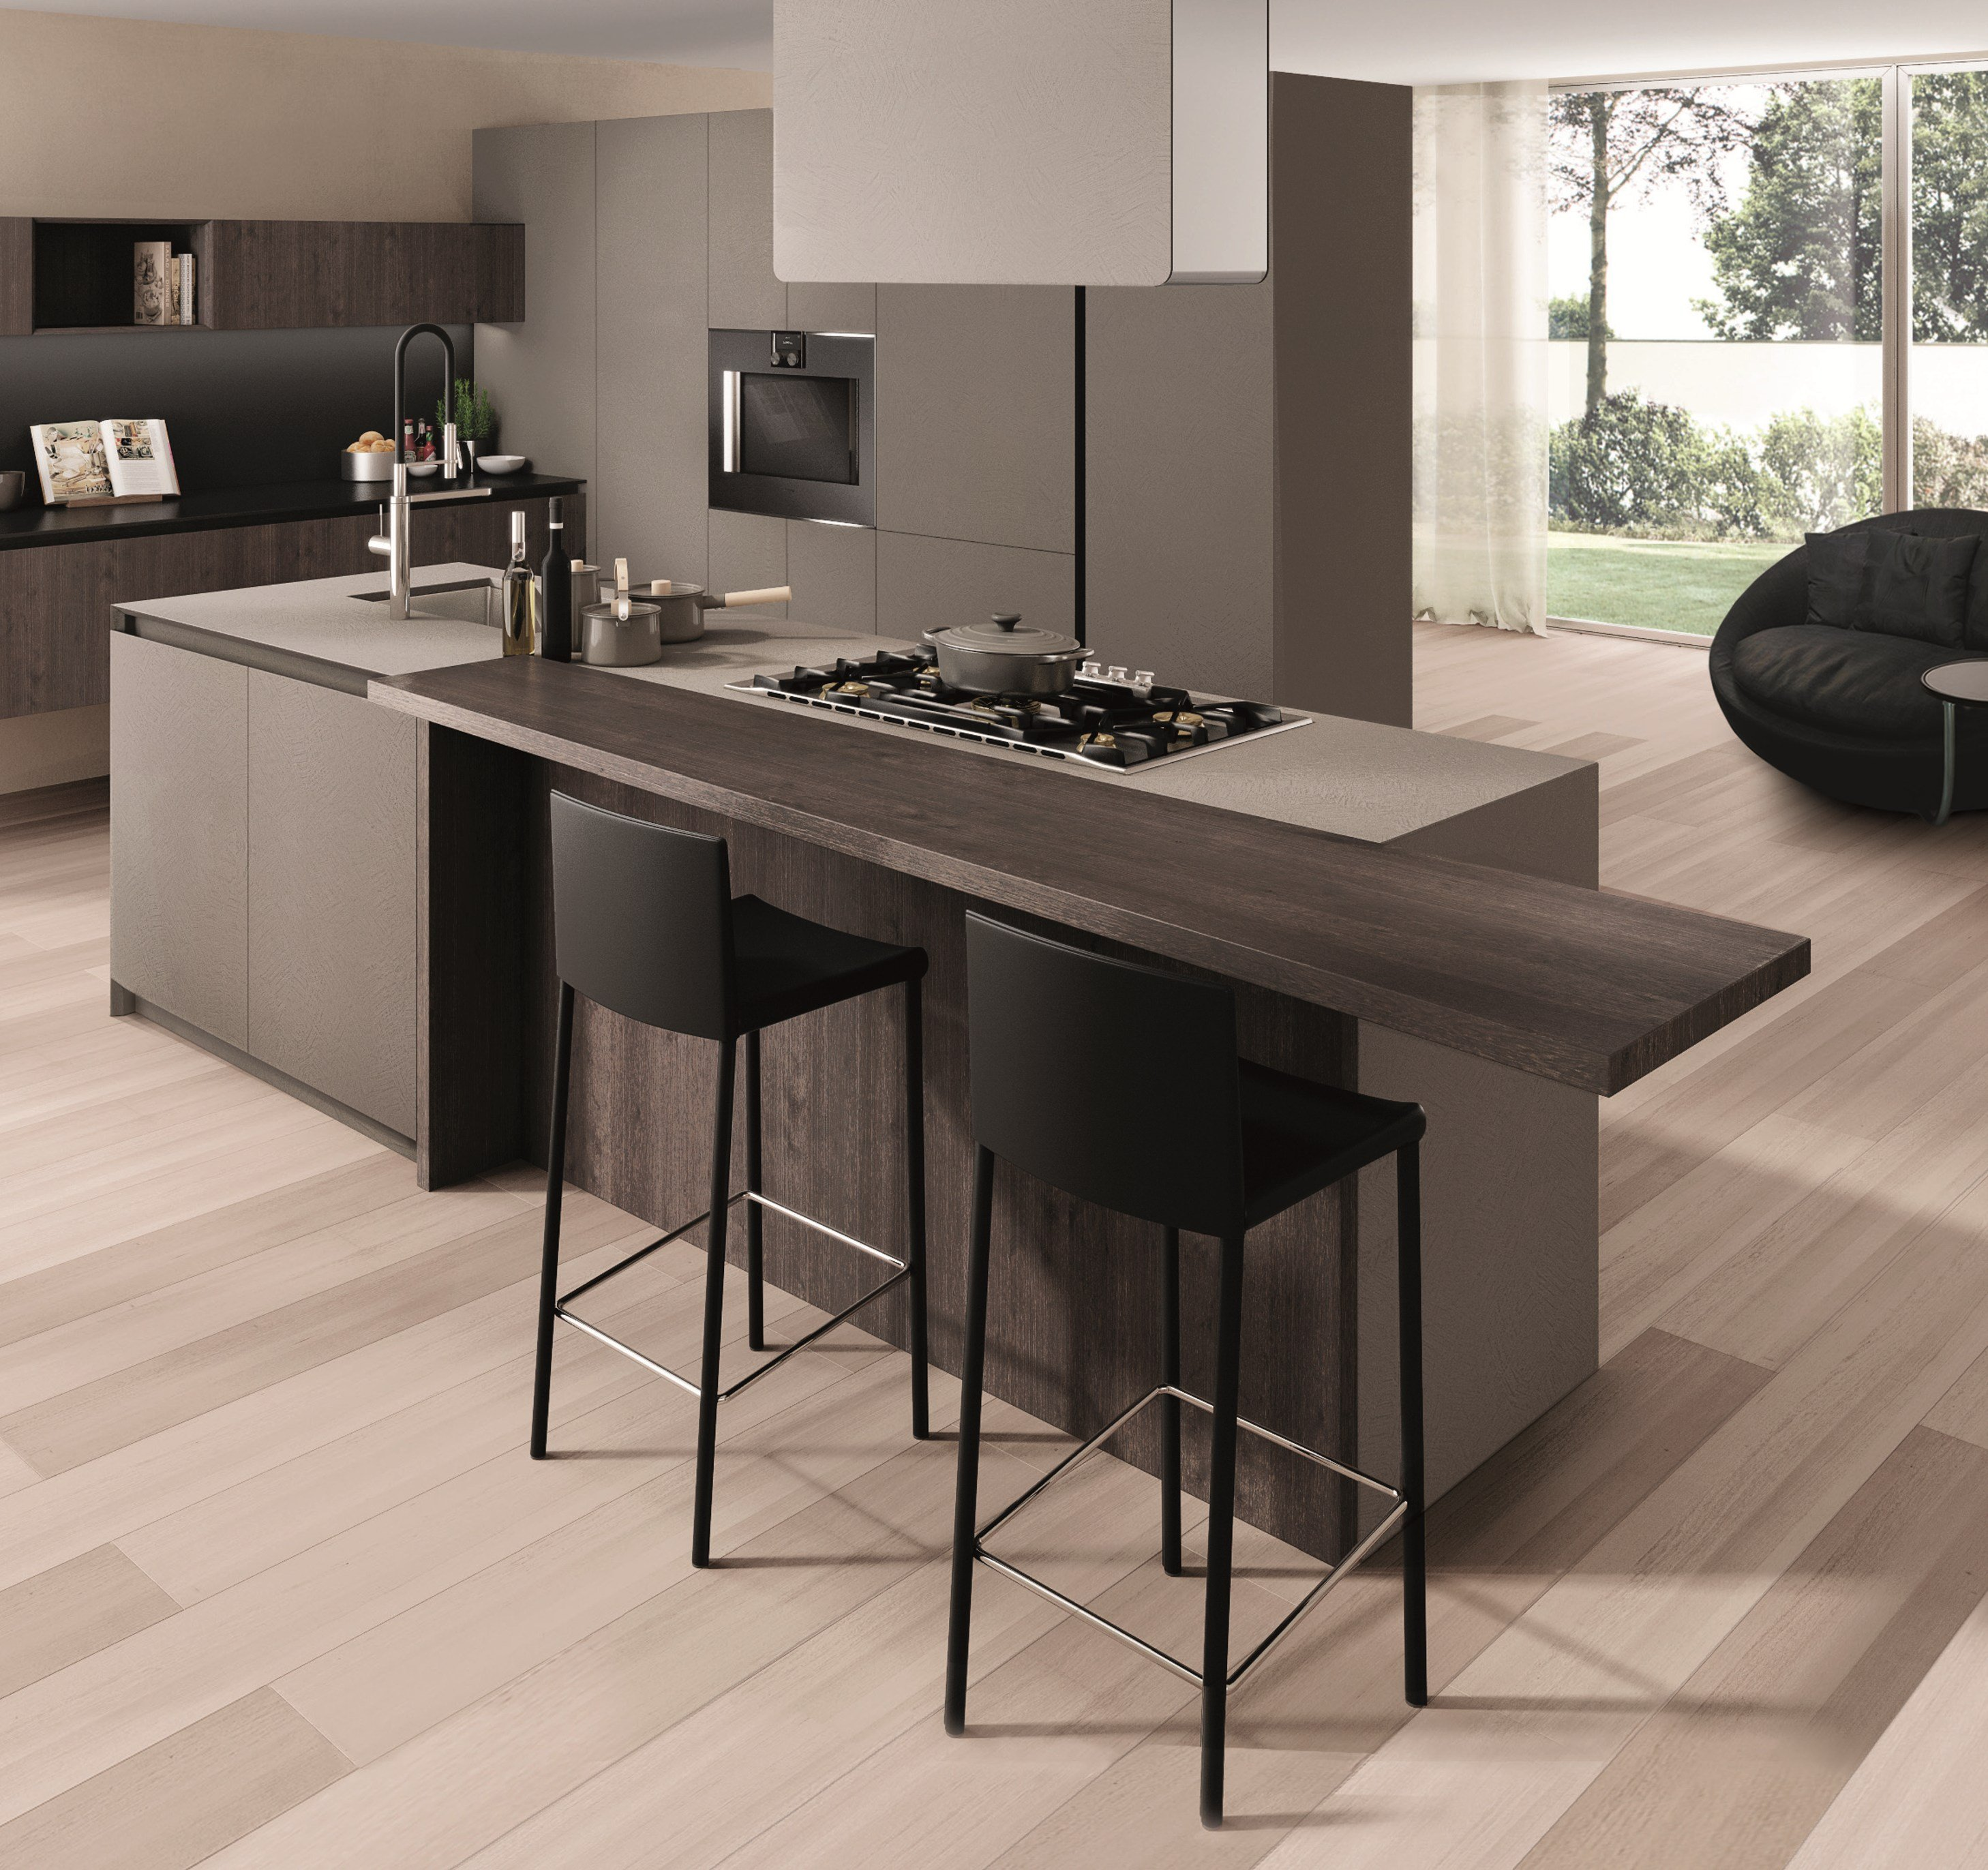 Wooden fitted kitchen filoantis by euromobil design for Wooden fitted kitchen